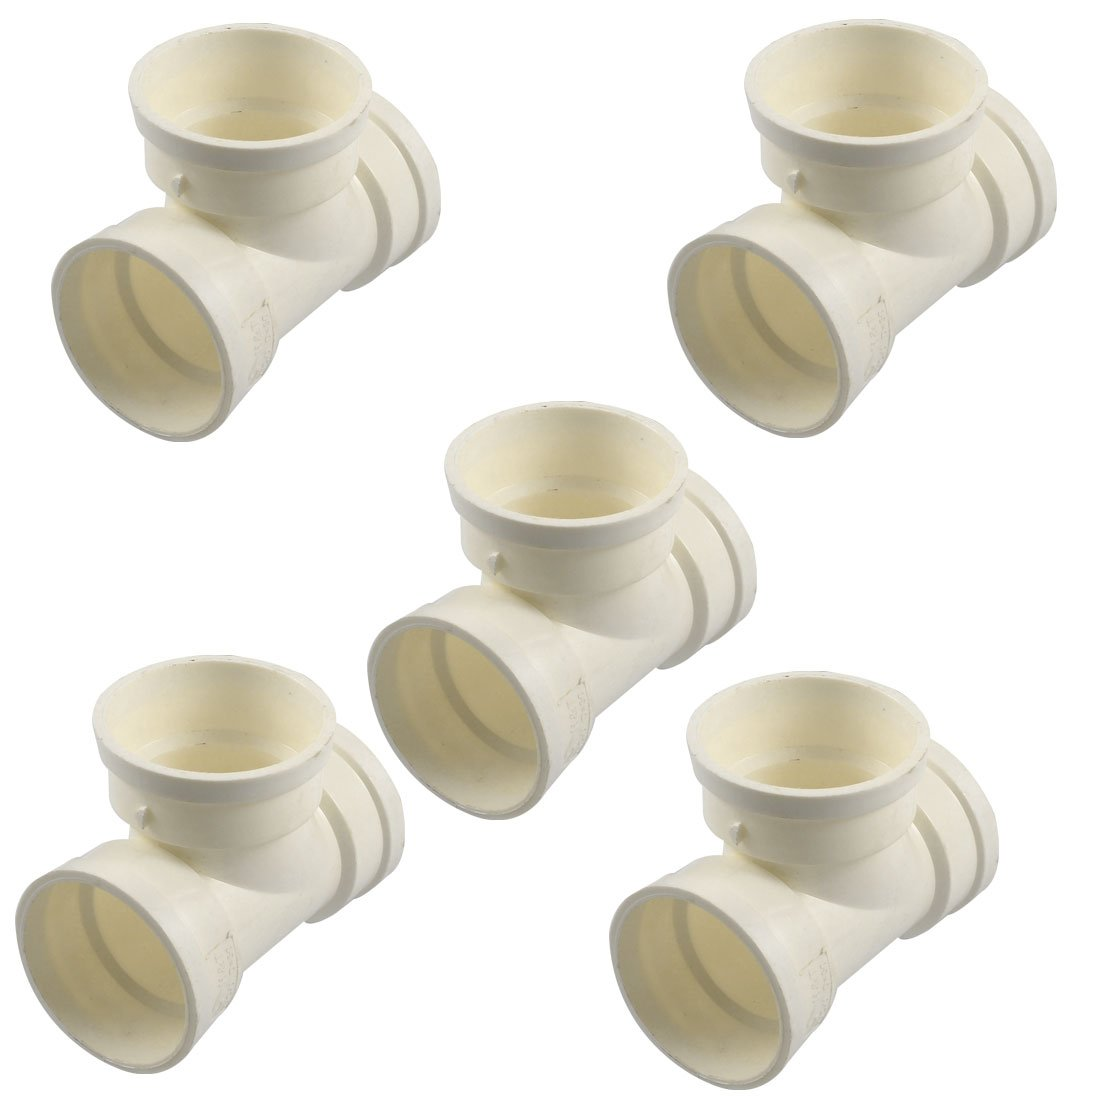 Uxcell a12111400ux0666-DM Tube Adapter Connectors, PVC Tee 3 Way Water Pipe, 50 mm Size (Pack of 5)